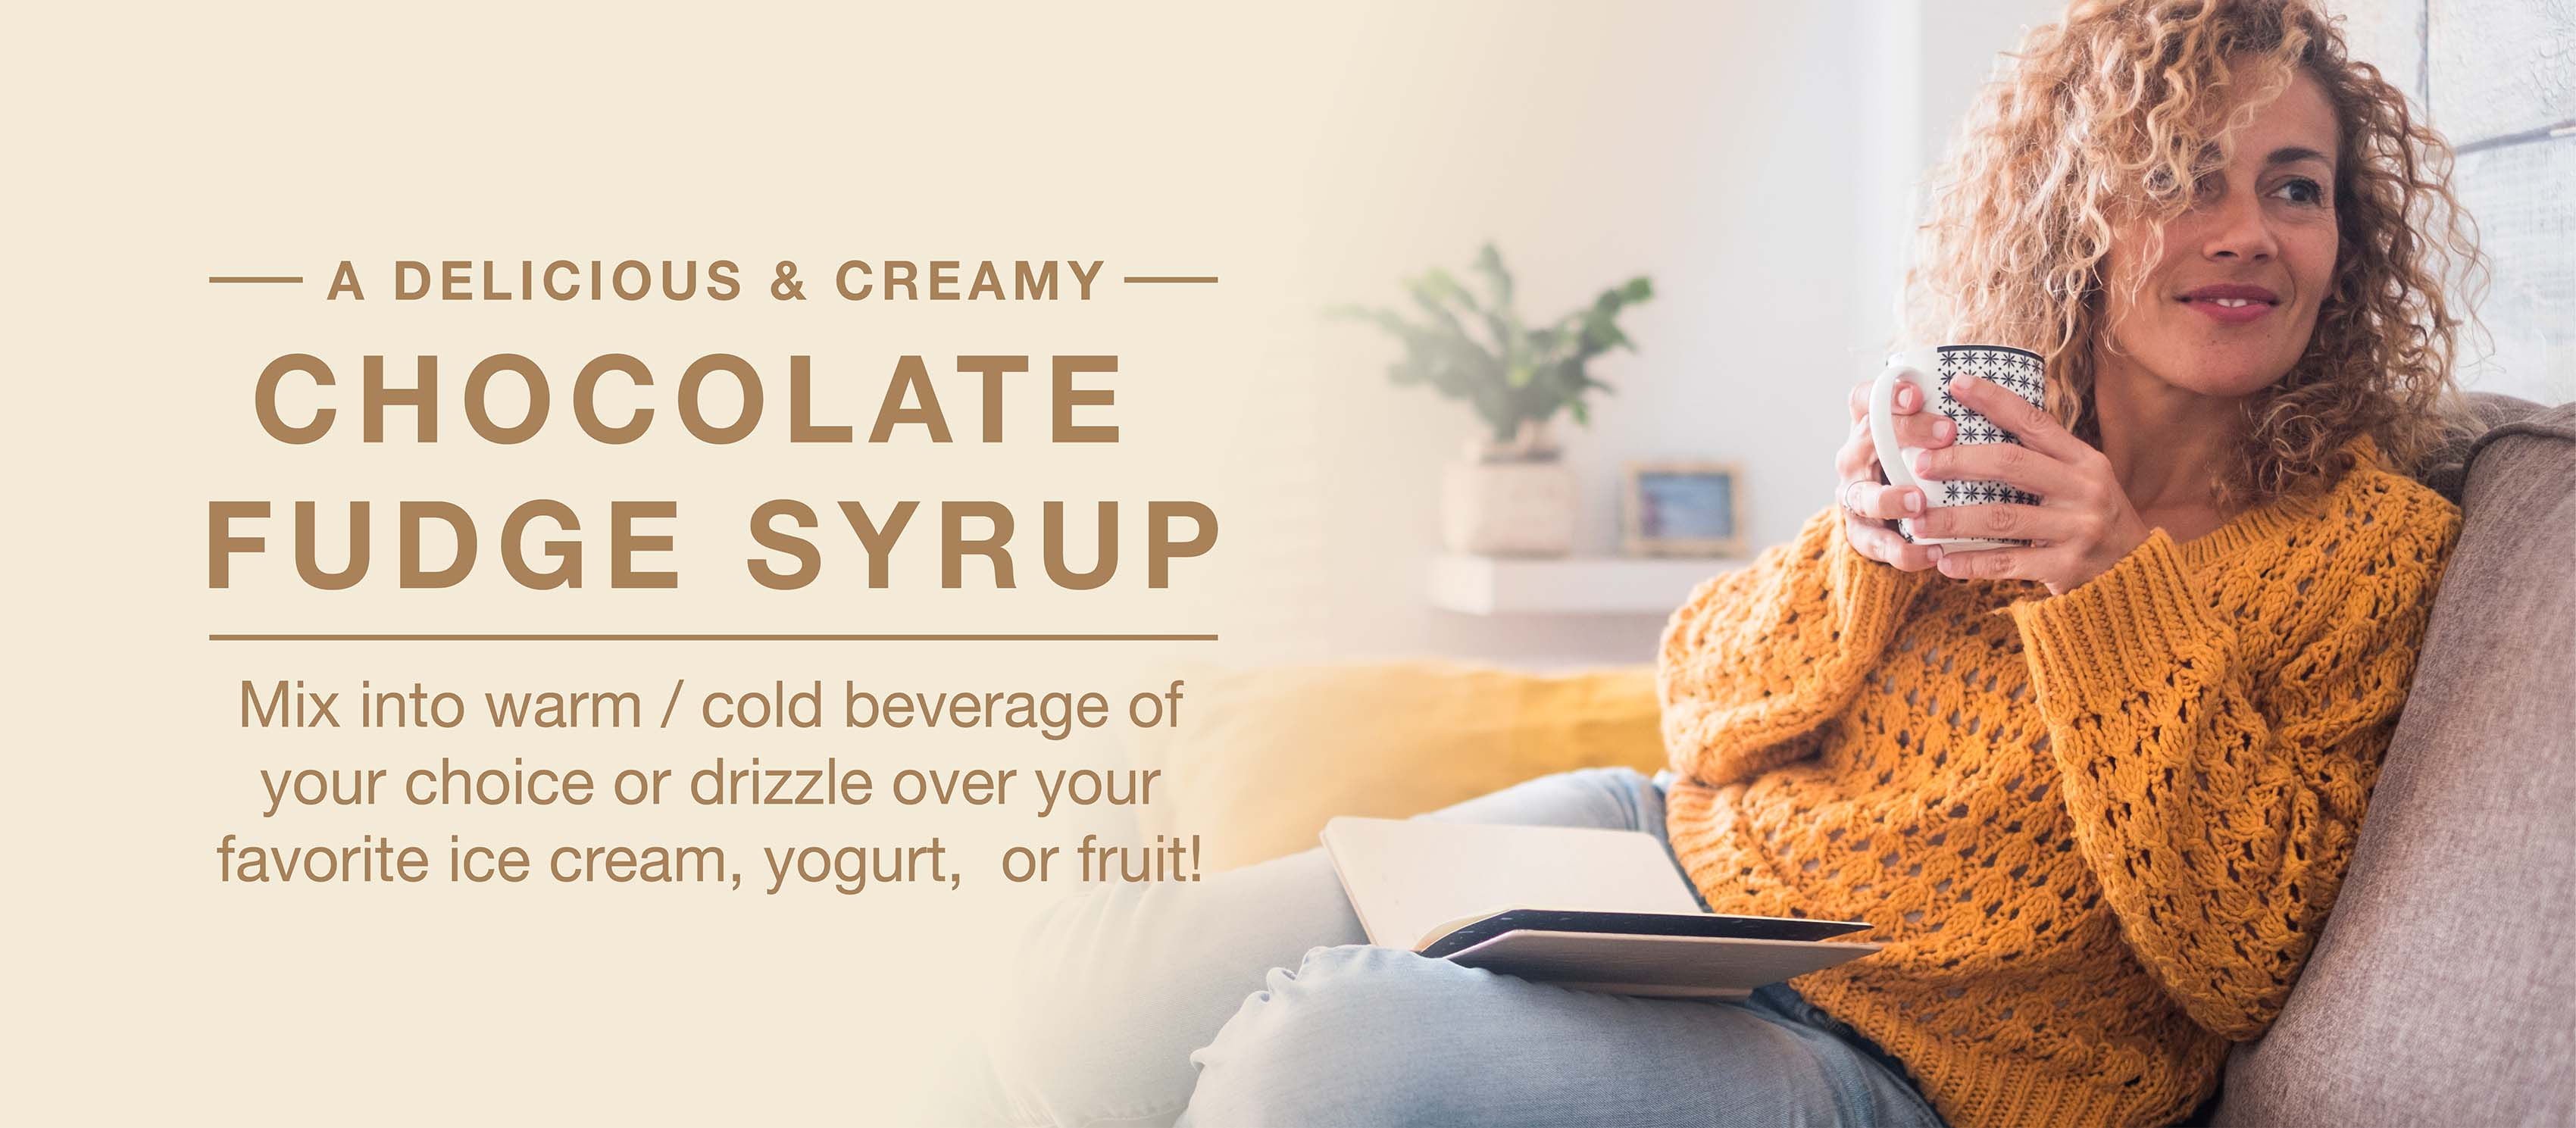 Mix into warm or cold beverage of your choice or drizzle over your favorite ice cream, yogurt, or fruit!